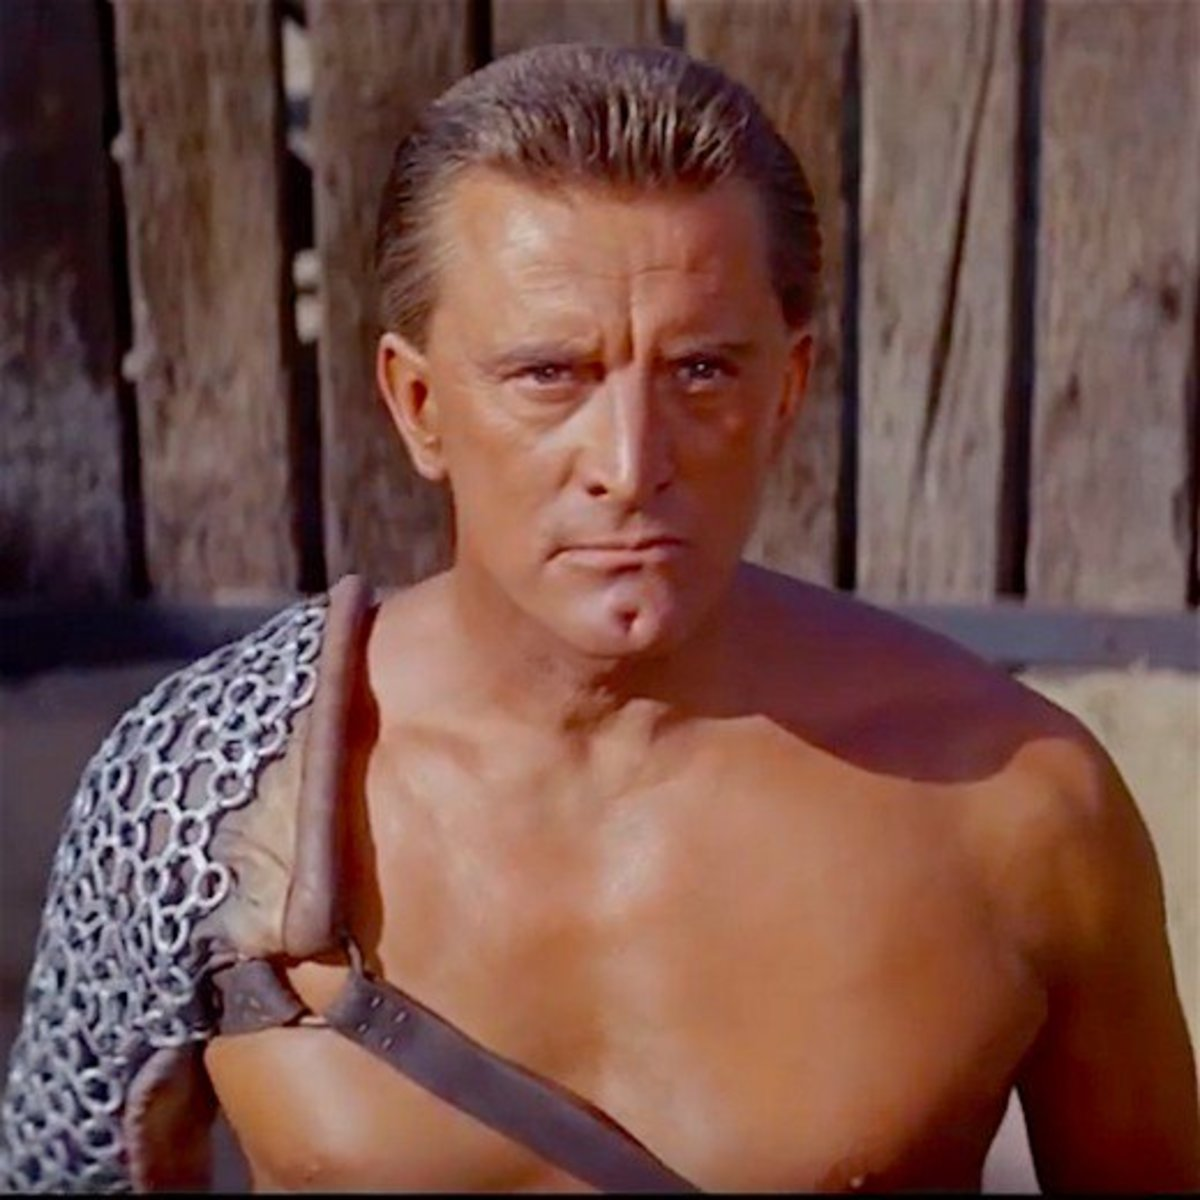 Kirk Douglas starred with Jean Simmons, Laurence Olivier, and Tony Curtis in the highly acclaimed 1960 film classic Spartacus.